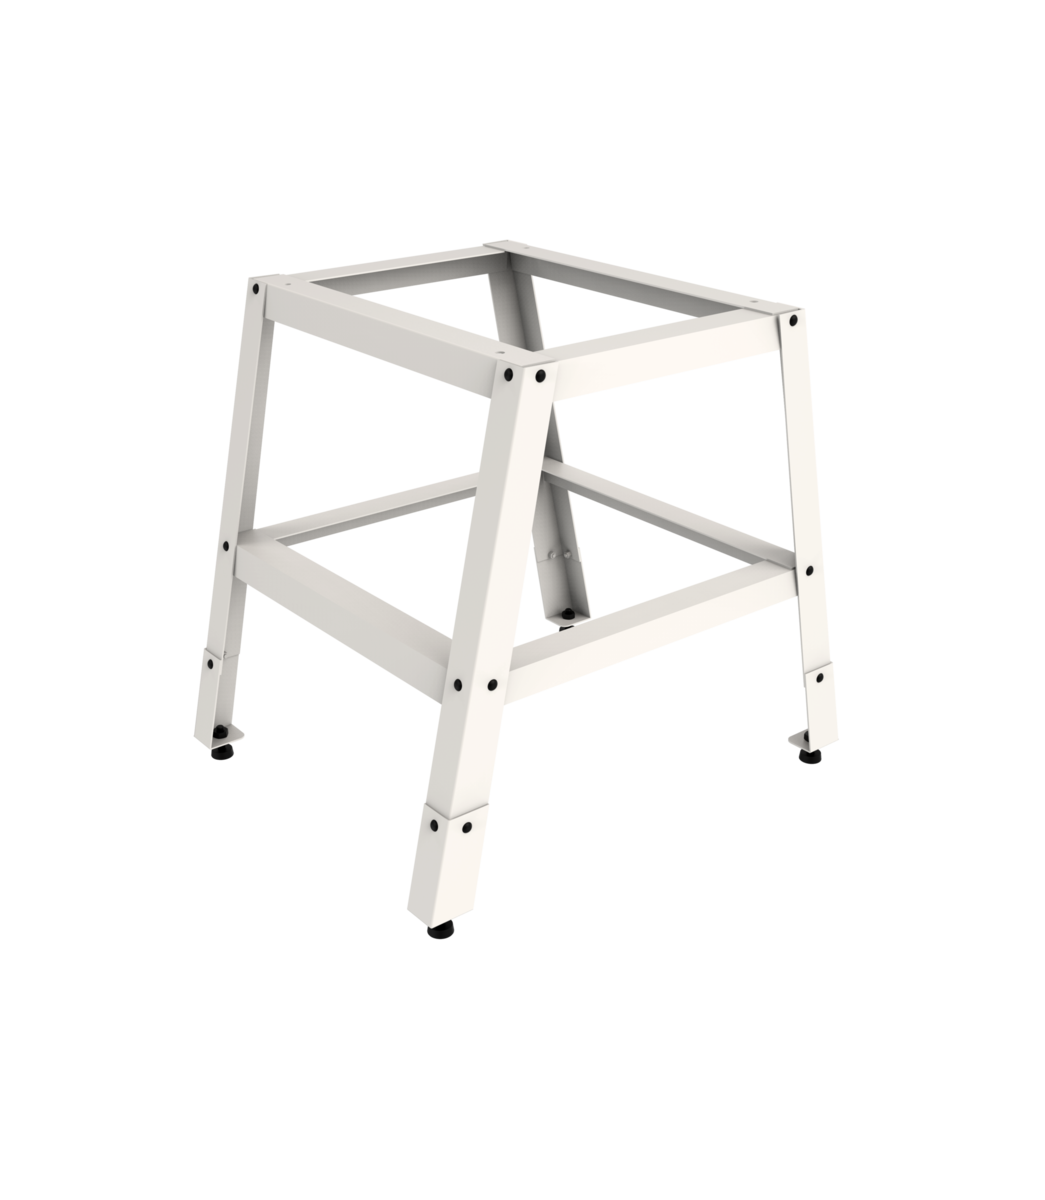 Scroll Saw Stand for JWSS-22S